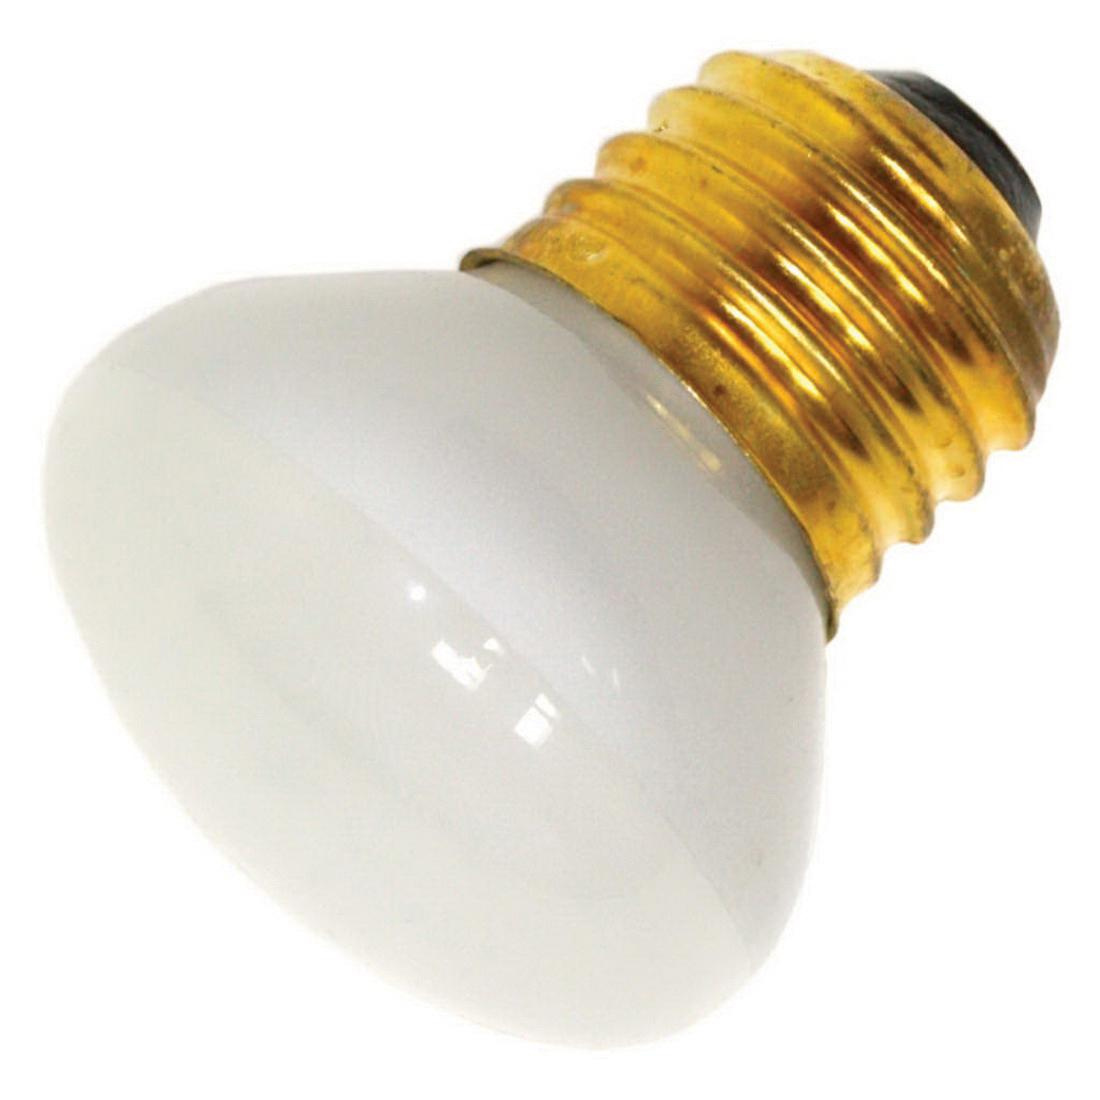 40 Watt In Lumen Philips Lighting 415380 R14 Incandescent Lamp 40 Watt E26 Medium Base 250 Lumens 2700k Frosted